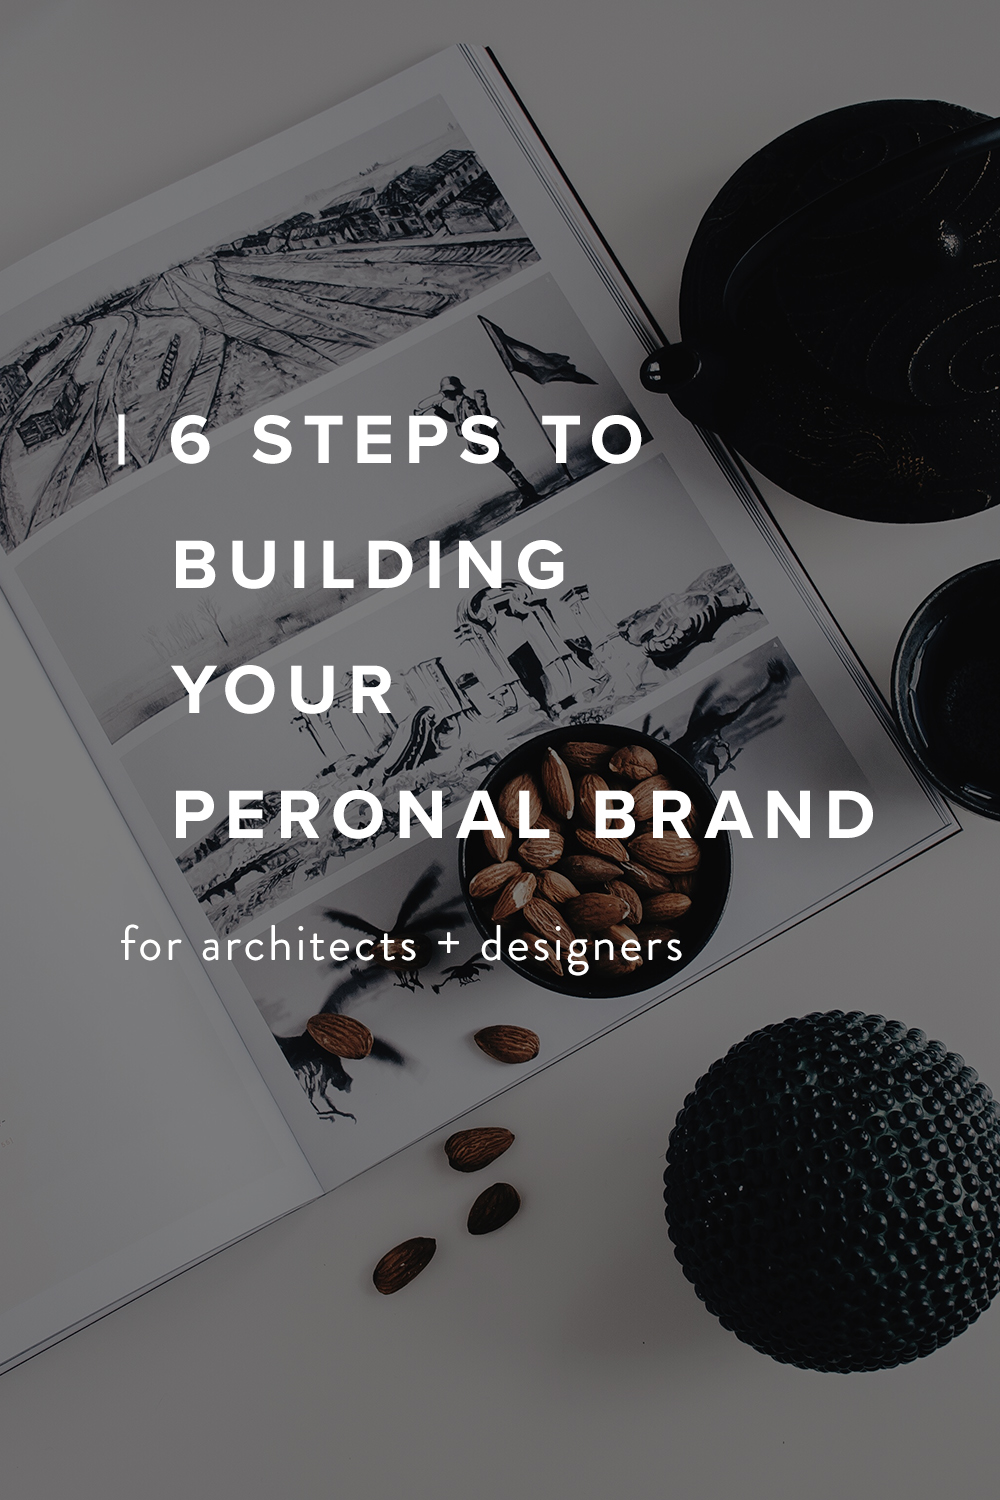 Let's talk branding. Whenever someone sends me their portfolio and asks for feedbacks, I always tell them to build a personal brand first. Many intern architects overlook this, because we are architects not graphic designers. We build buildings, not branding. Read more on the Millennial Architect blog.   joann lui